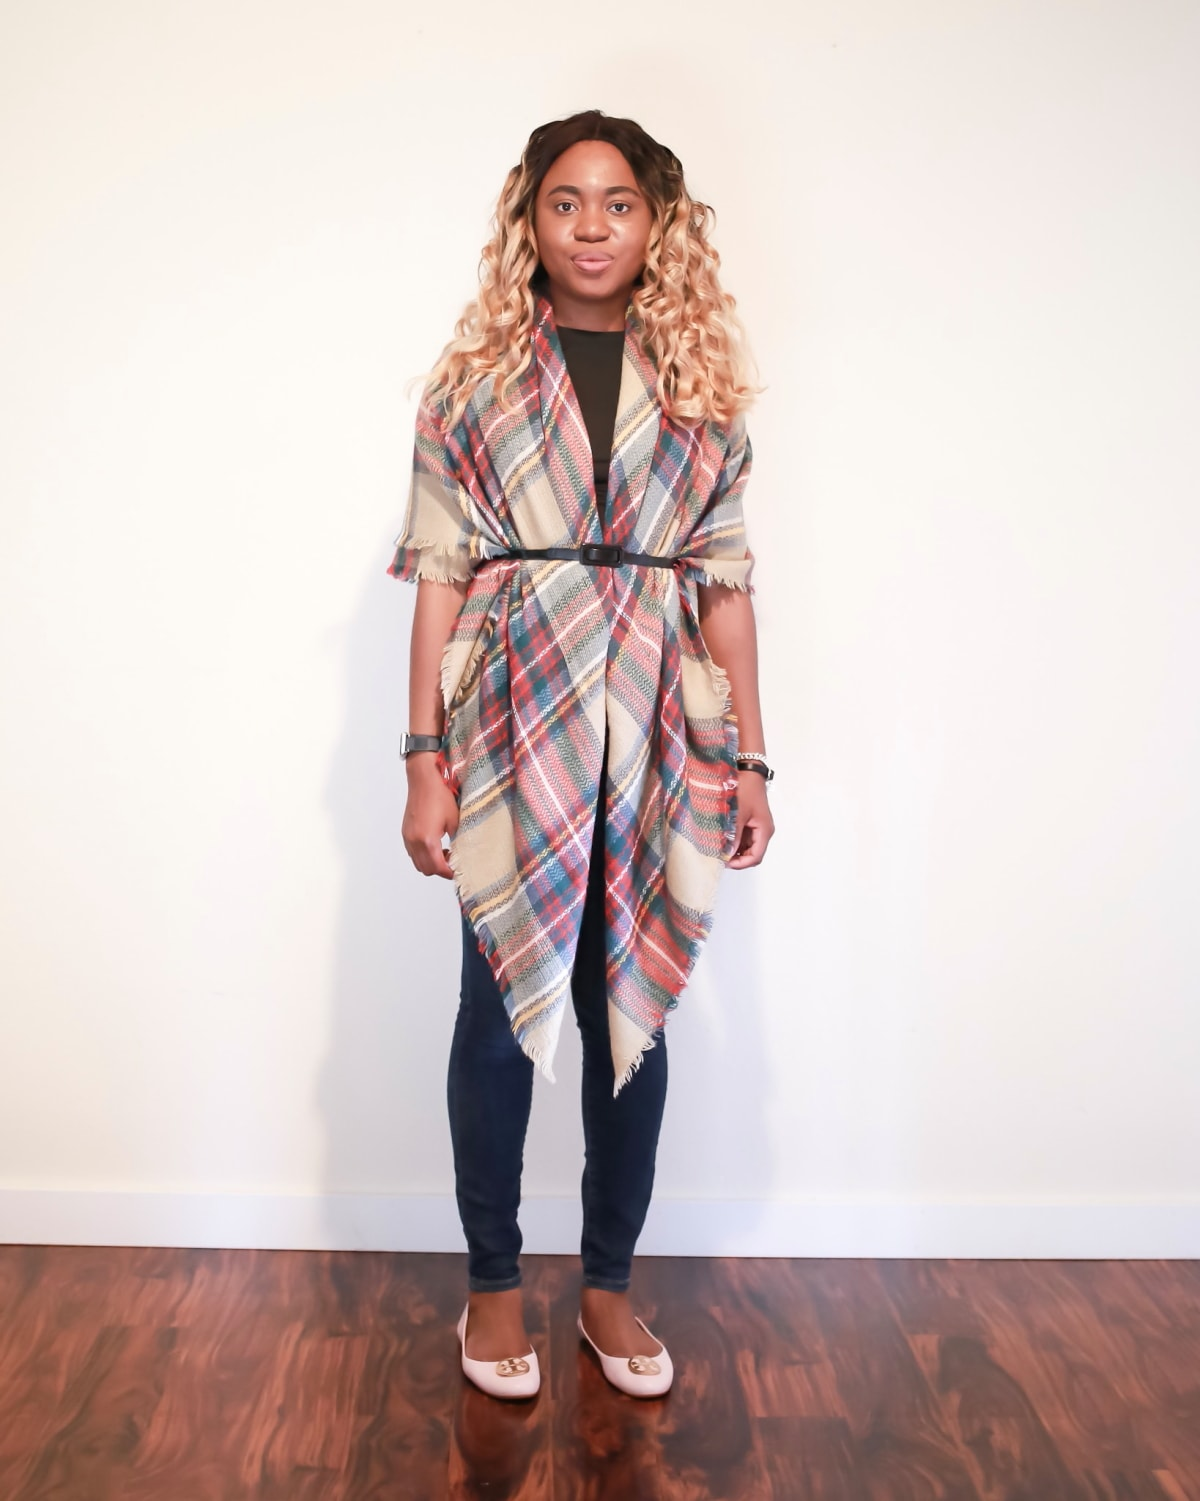 Want to keep warm AND change up your winter style this year? You'll love these 5 easiest ways to style your blanket scarves this season.